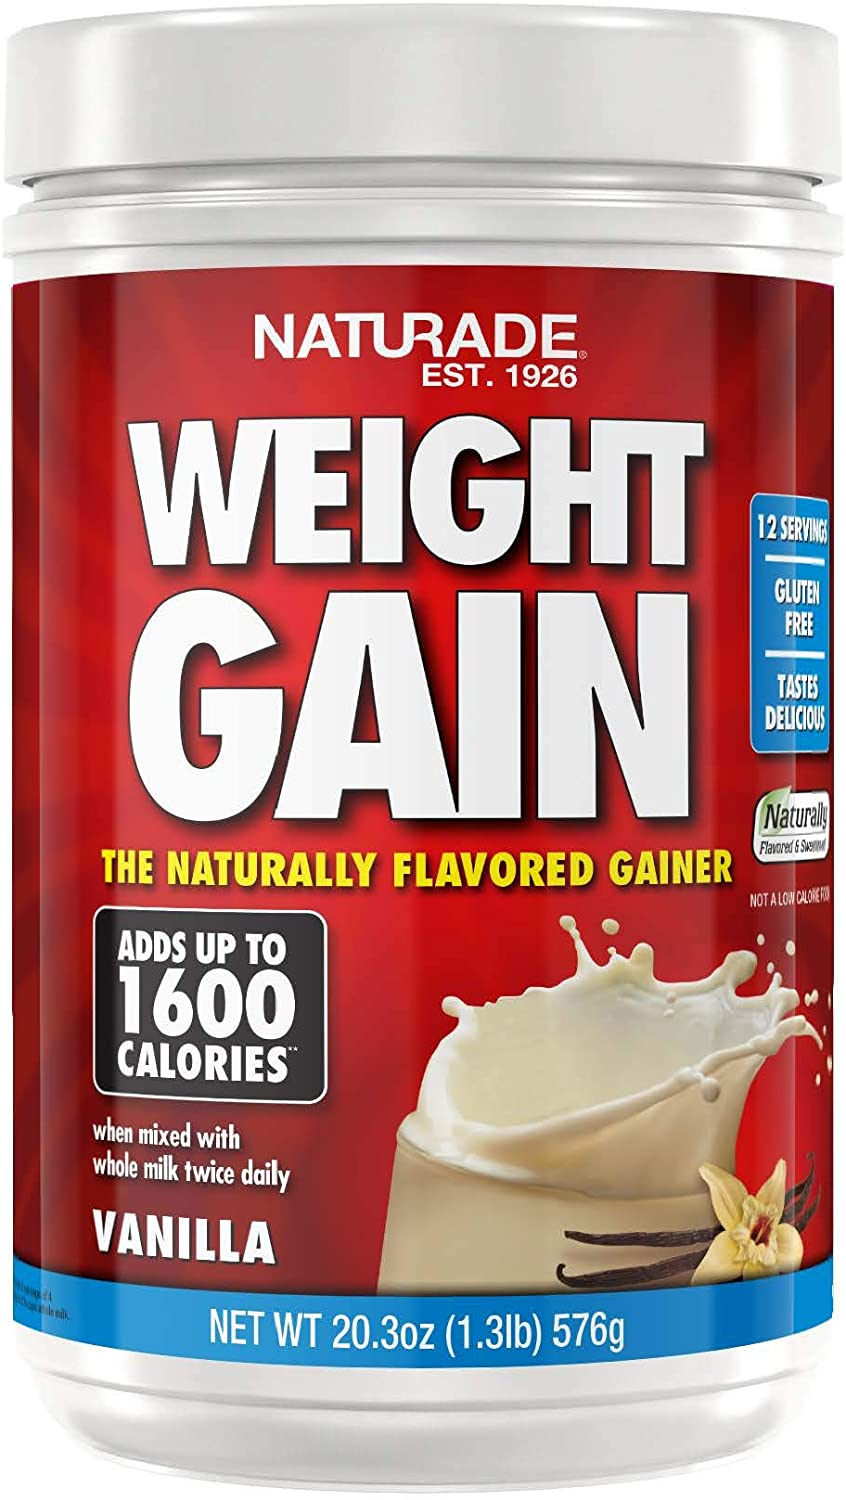 Naturade Weight Gain Instant Nutrition Drink Mix, Vanilla ,20.3 Ounce: Health & Personal Care